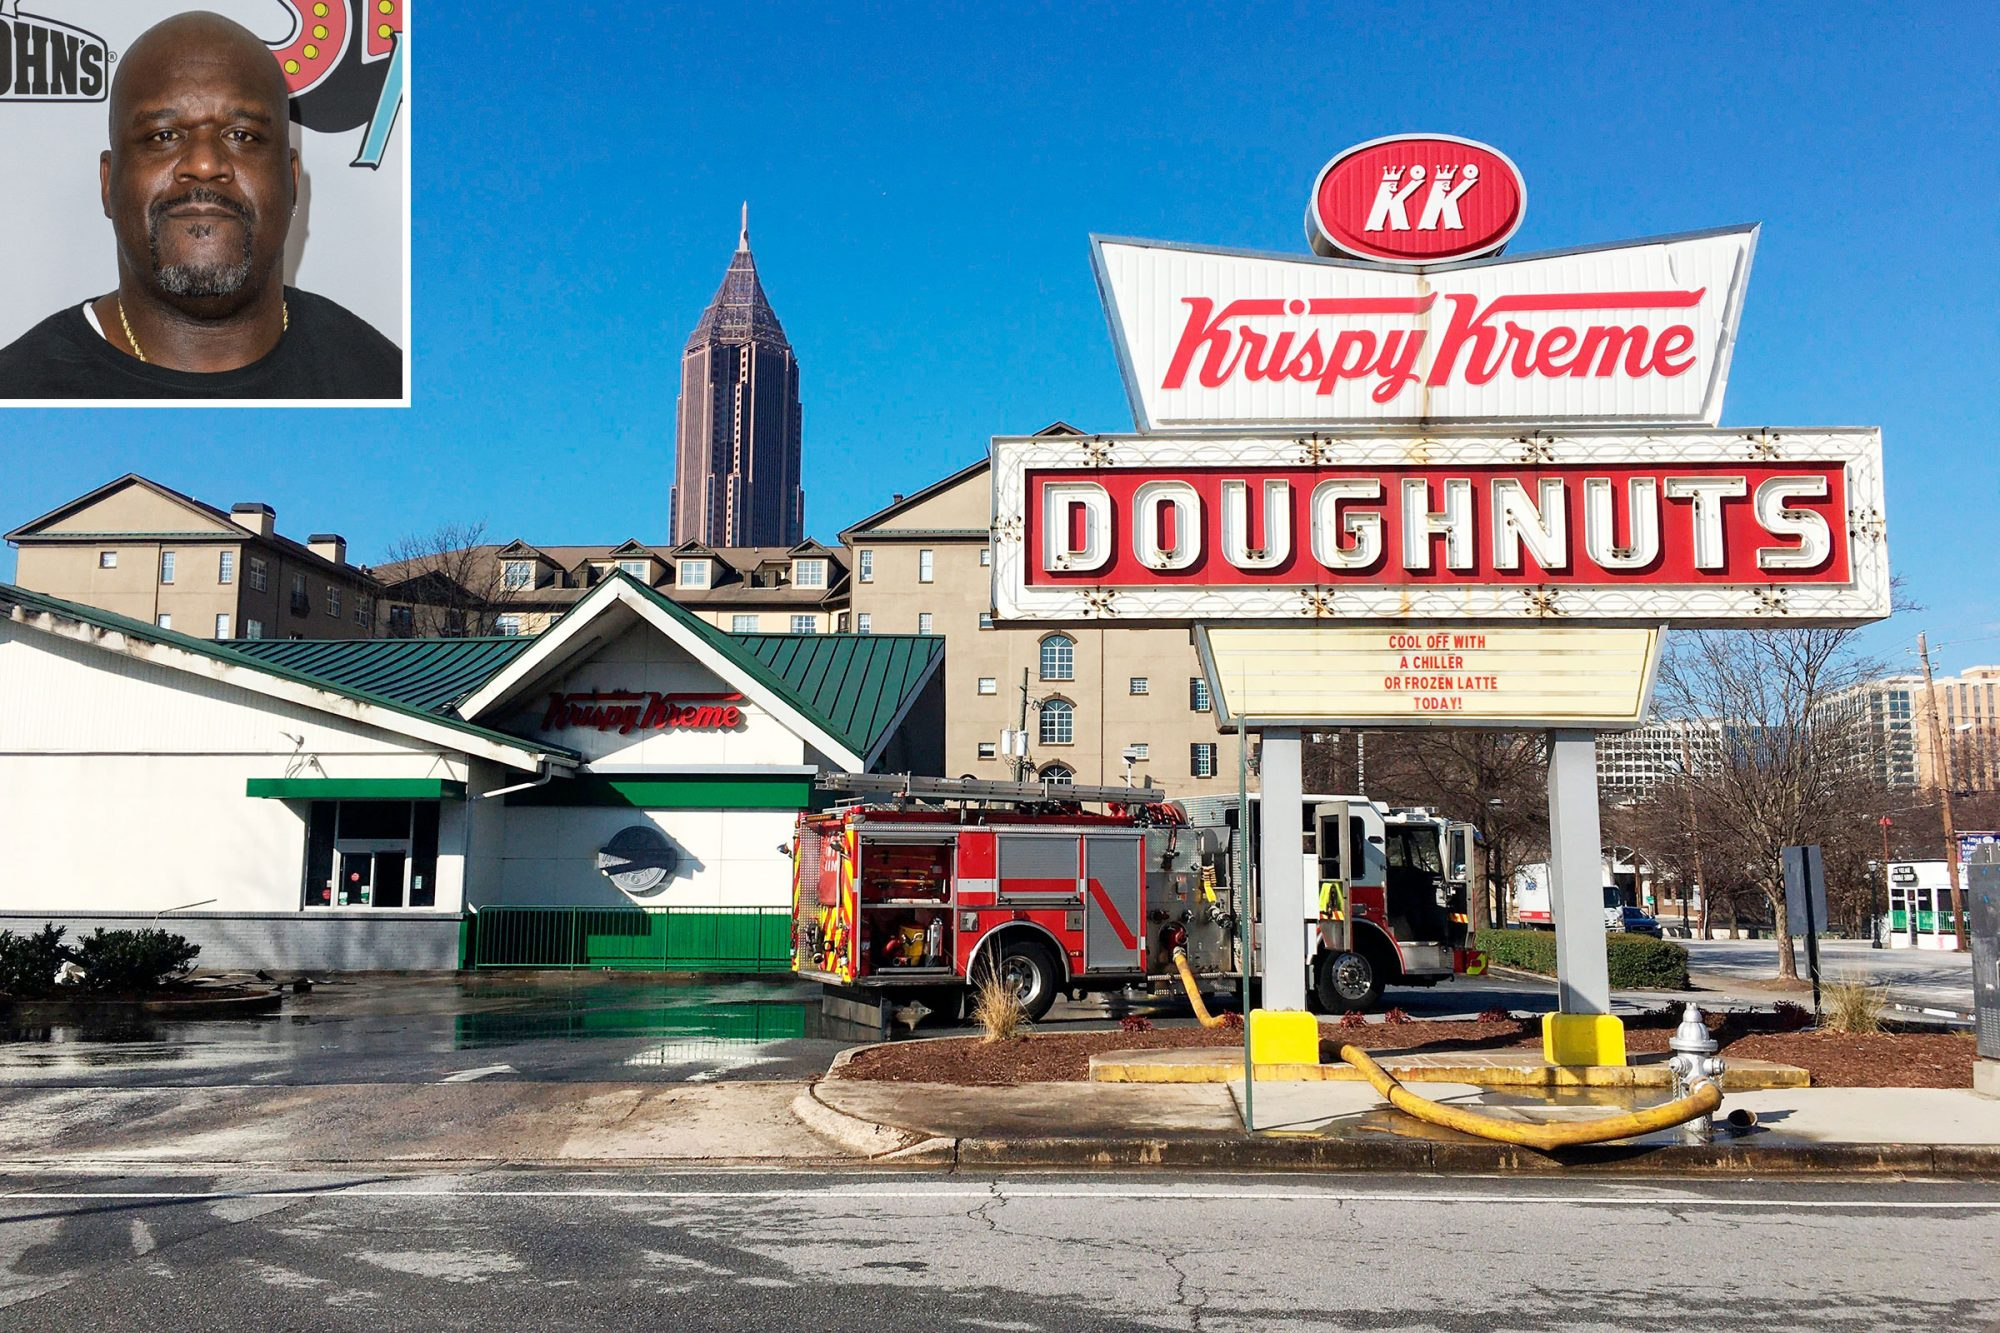 Krispy Kreme Doughnuts fire destroys iconic eatery owned by Shaquille O'Neal